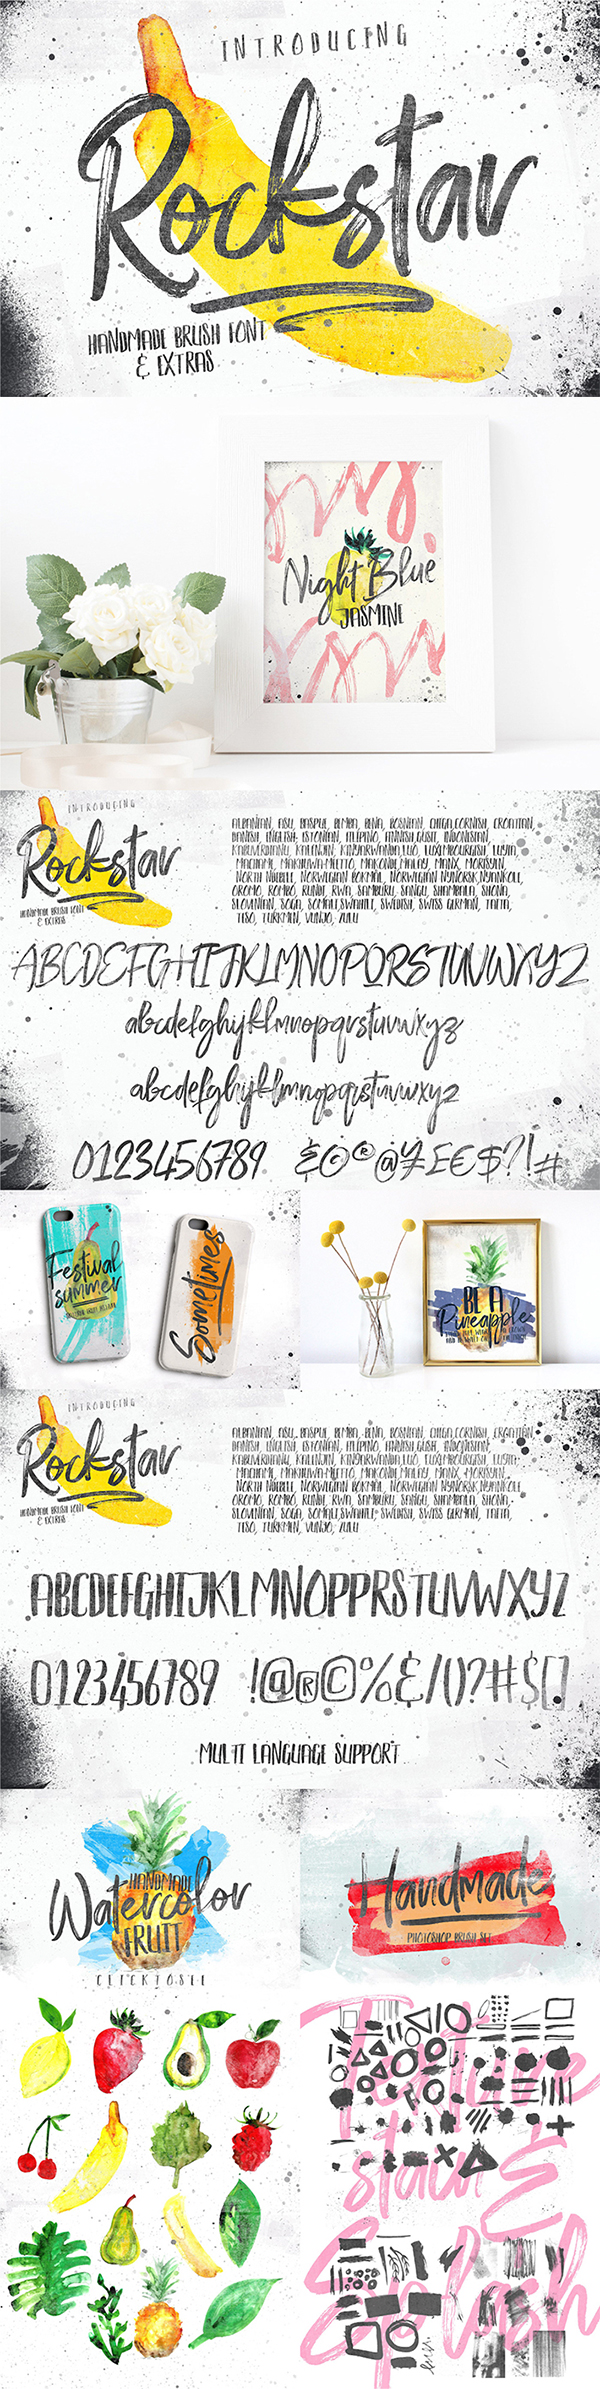 Handmade Brush Font & Photoshop Brush Set Free Download